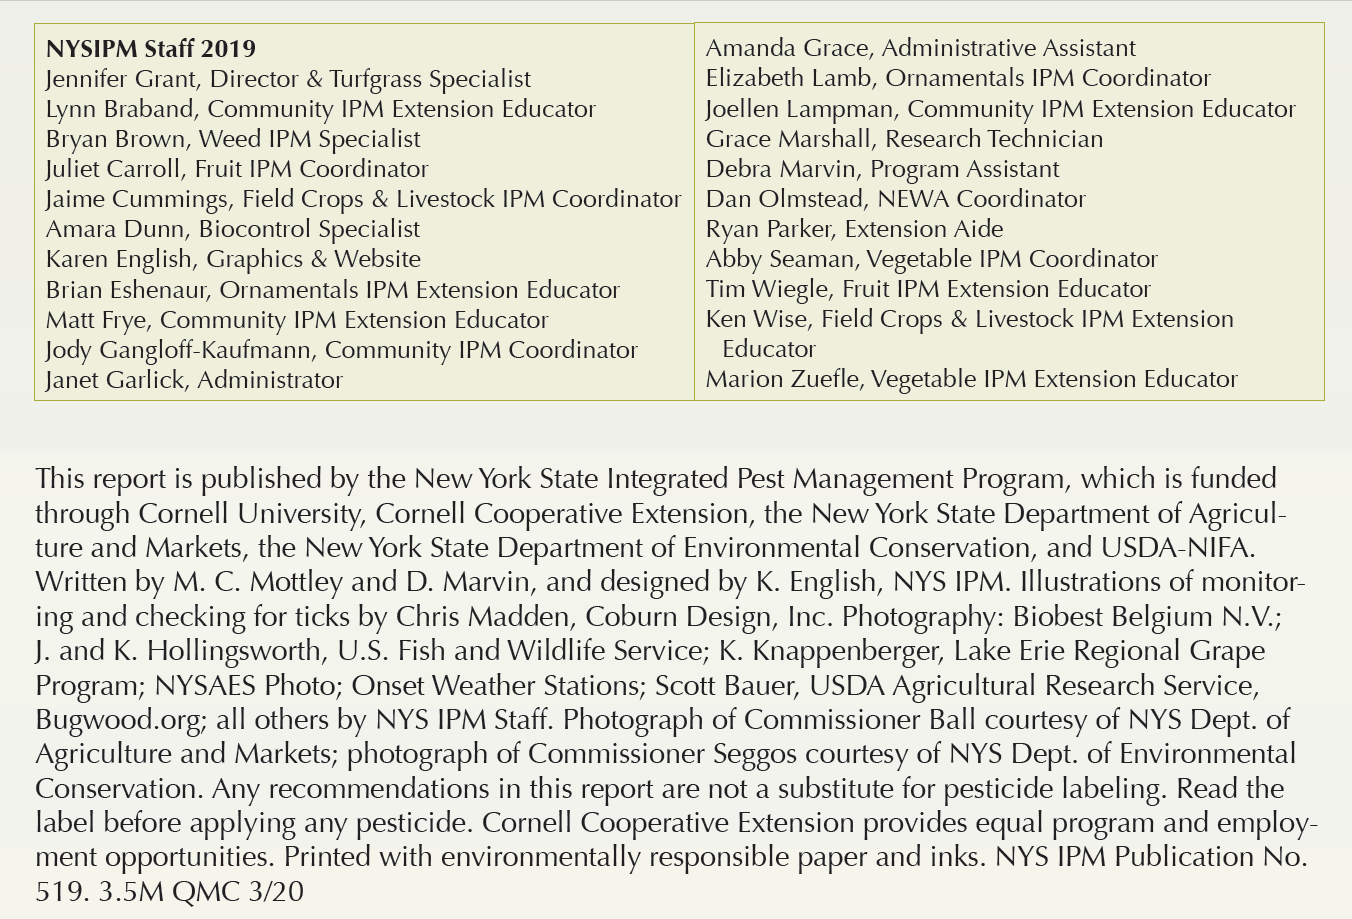 graphic shows the names of IPM staff and the backcover information included on our annual report. This list includes are collaborators across the state and thanks the writers and Karen English for her graphic design.